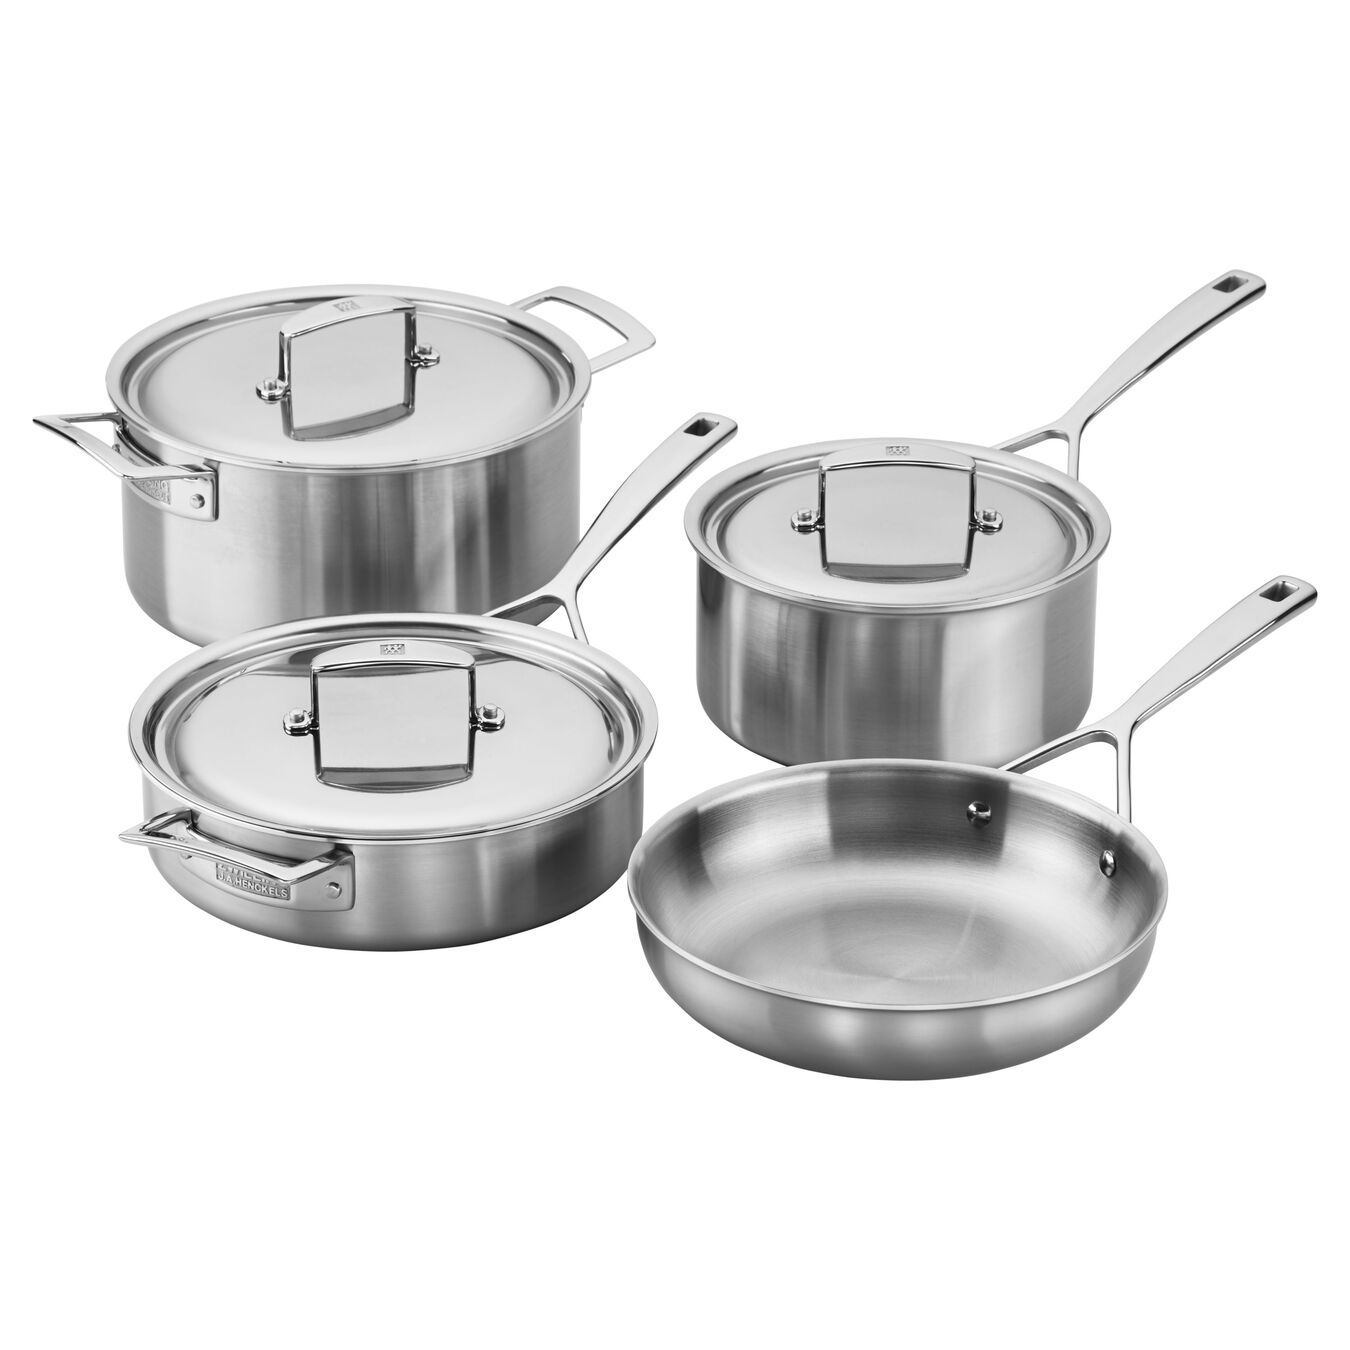 7 Piece 18/10 Stainless Steel Cookware set,,large 1